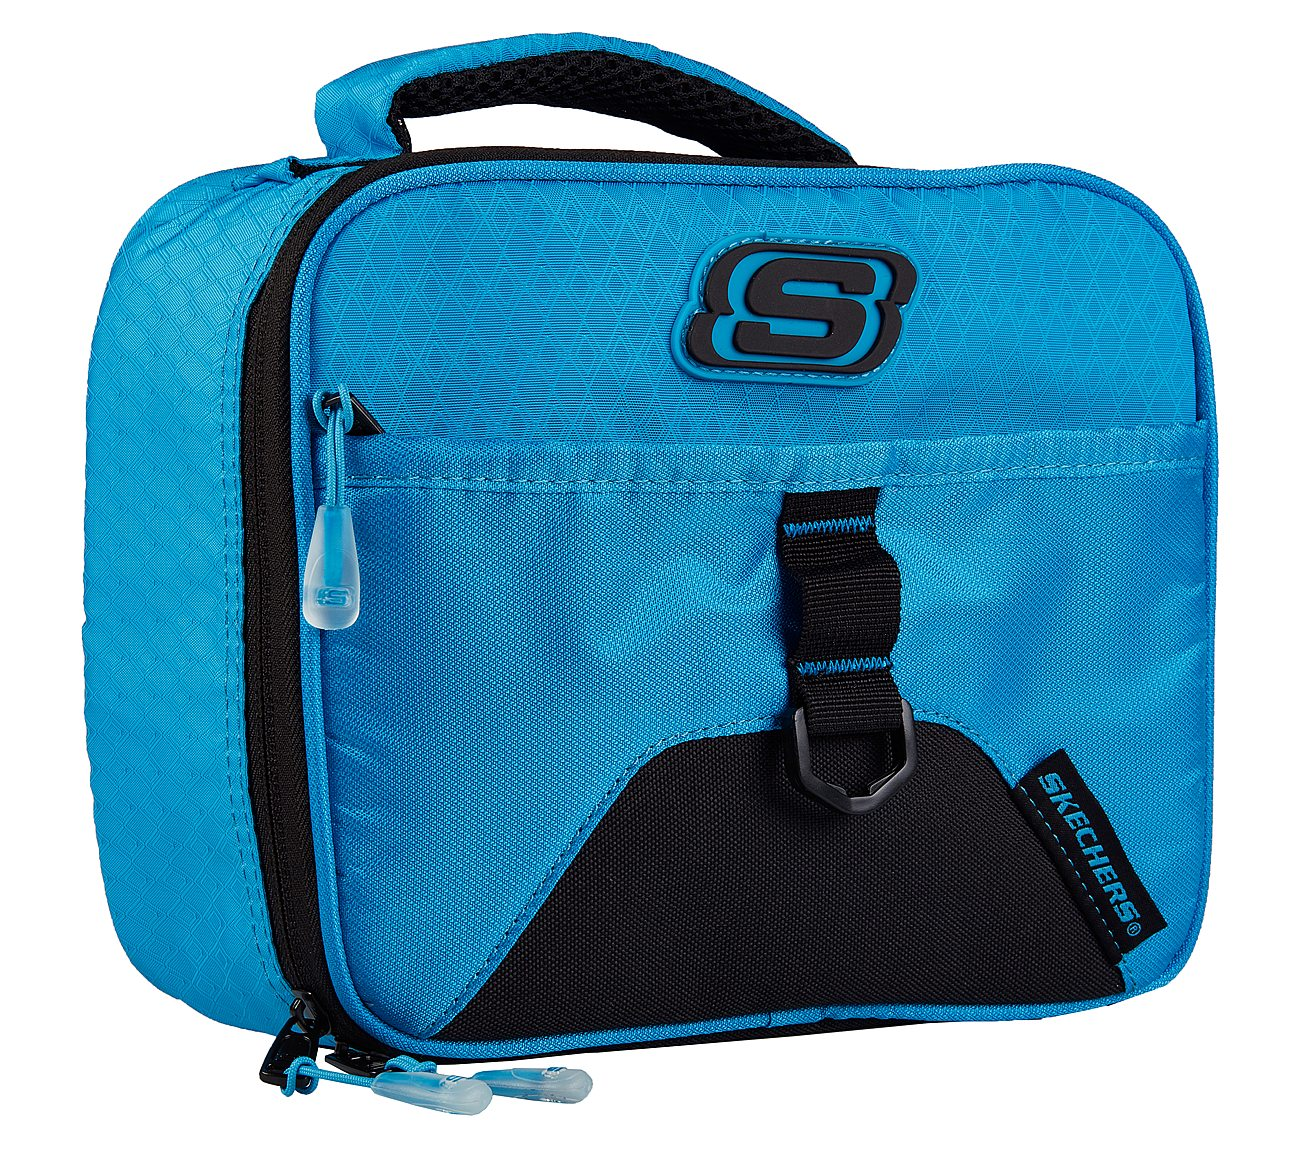 SKECHERS Speedway Lunch Tote Bag Bags Shoes